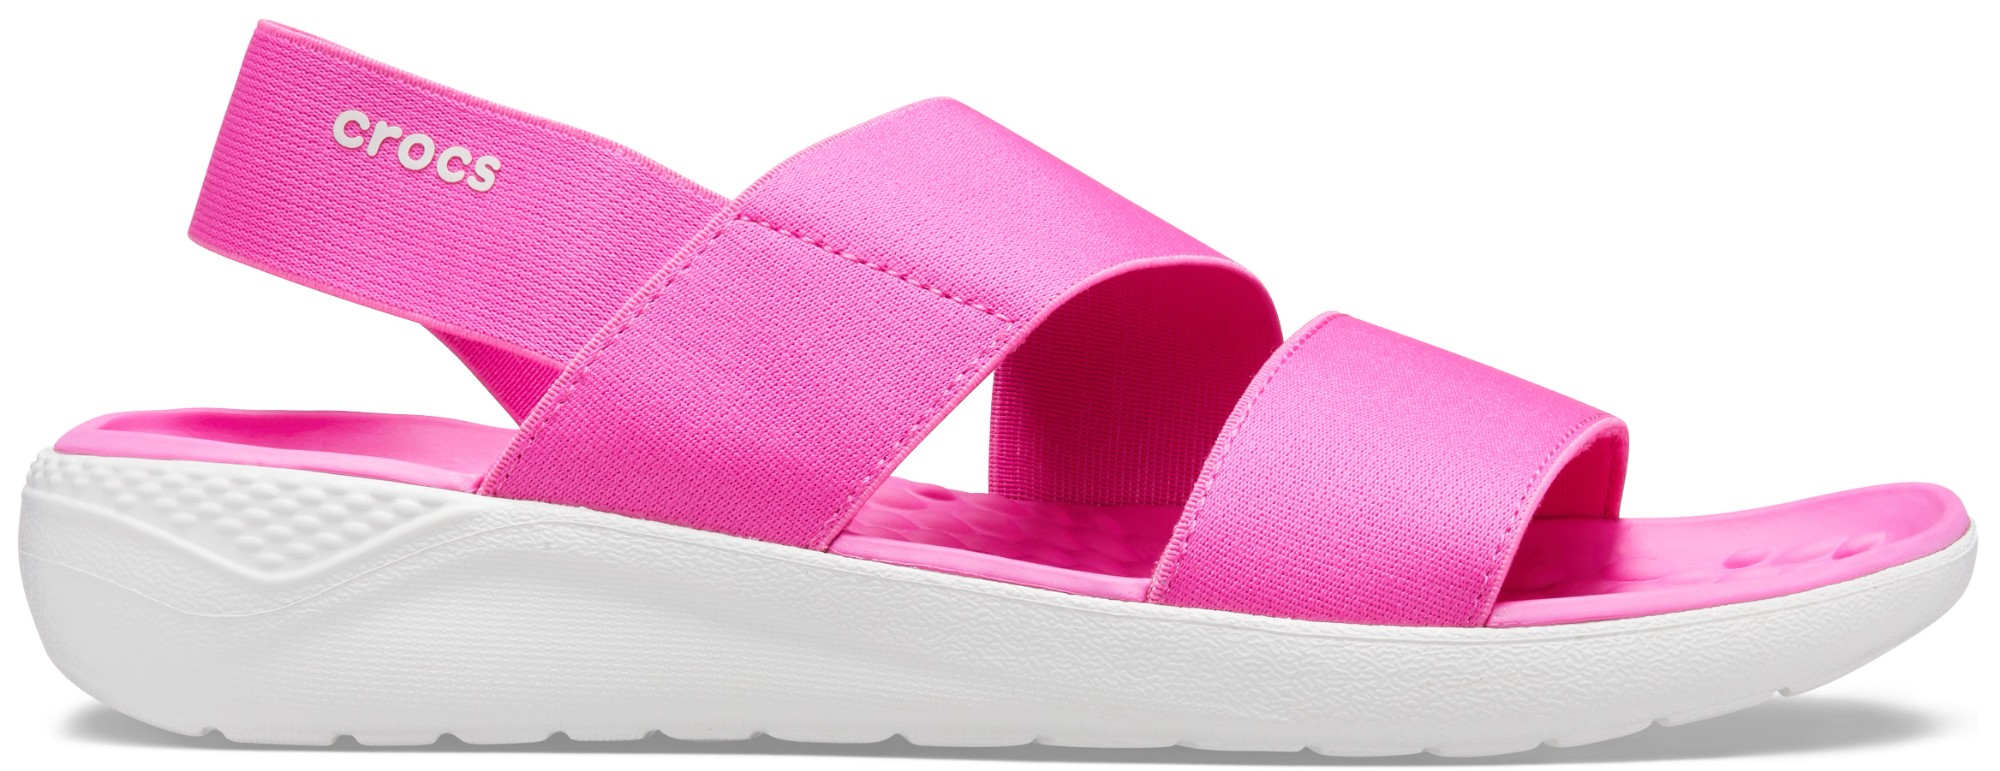 Crocs™ Literide Stretch Sandal Womens Electric Pink/Almost White 35